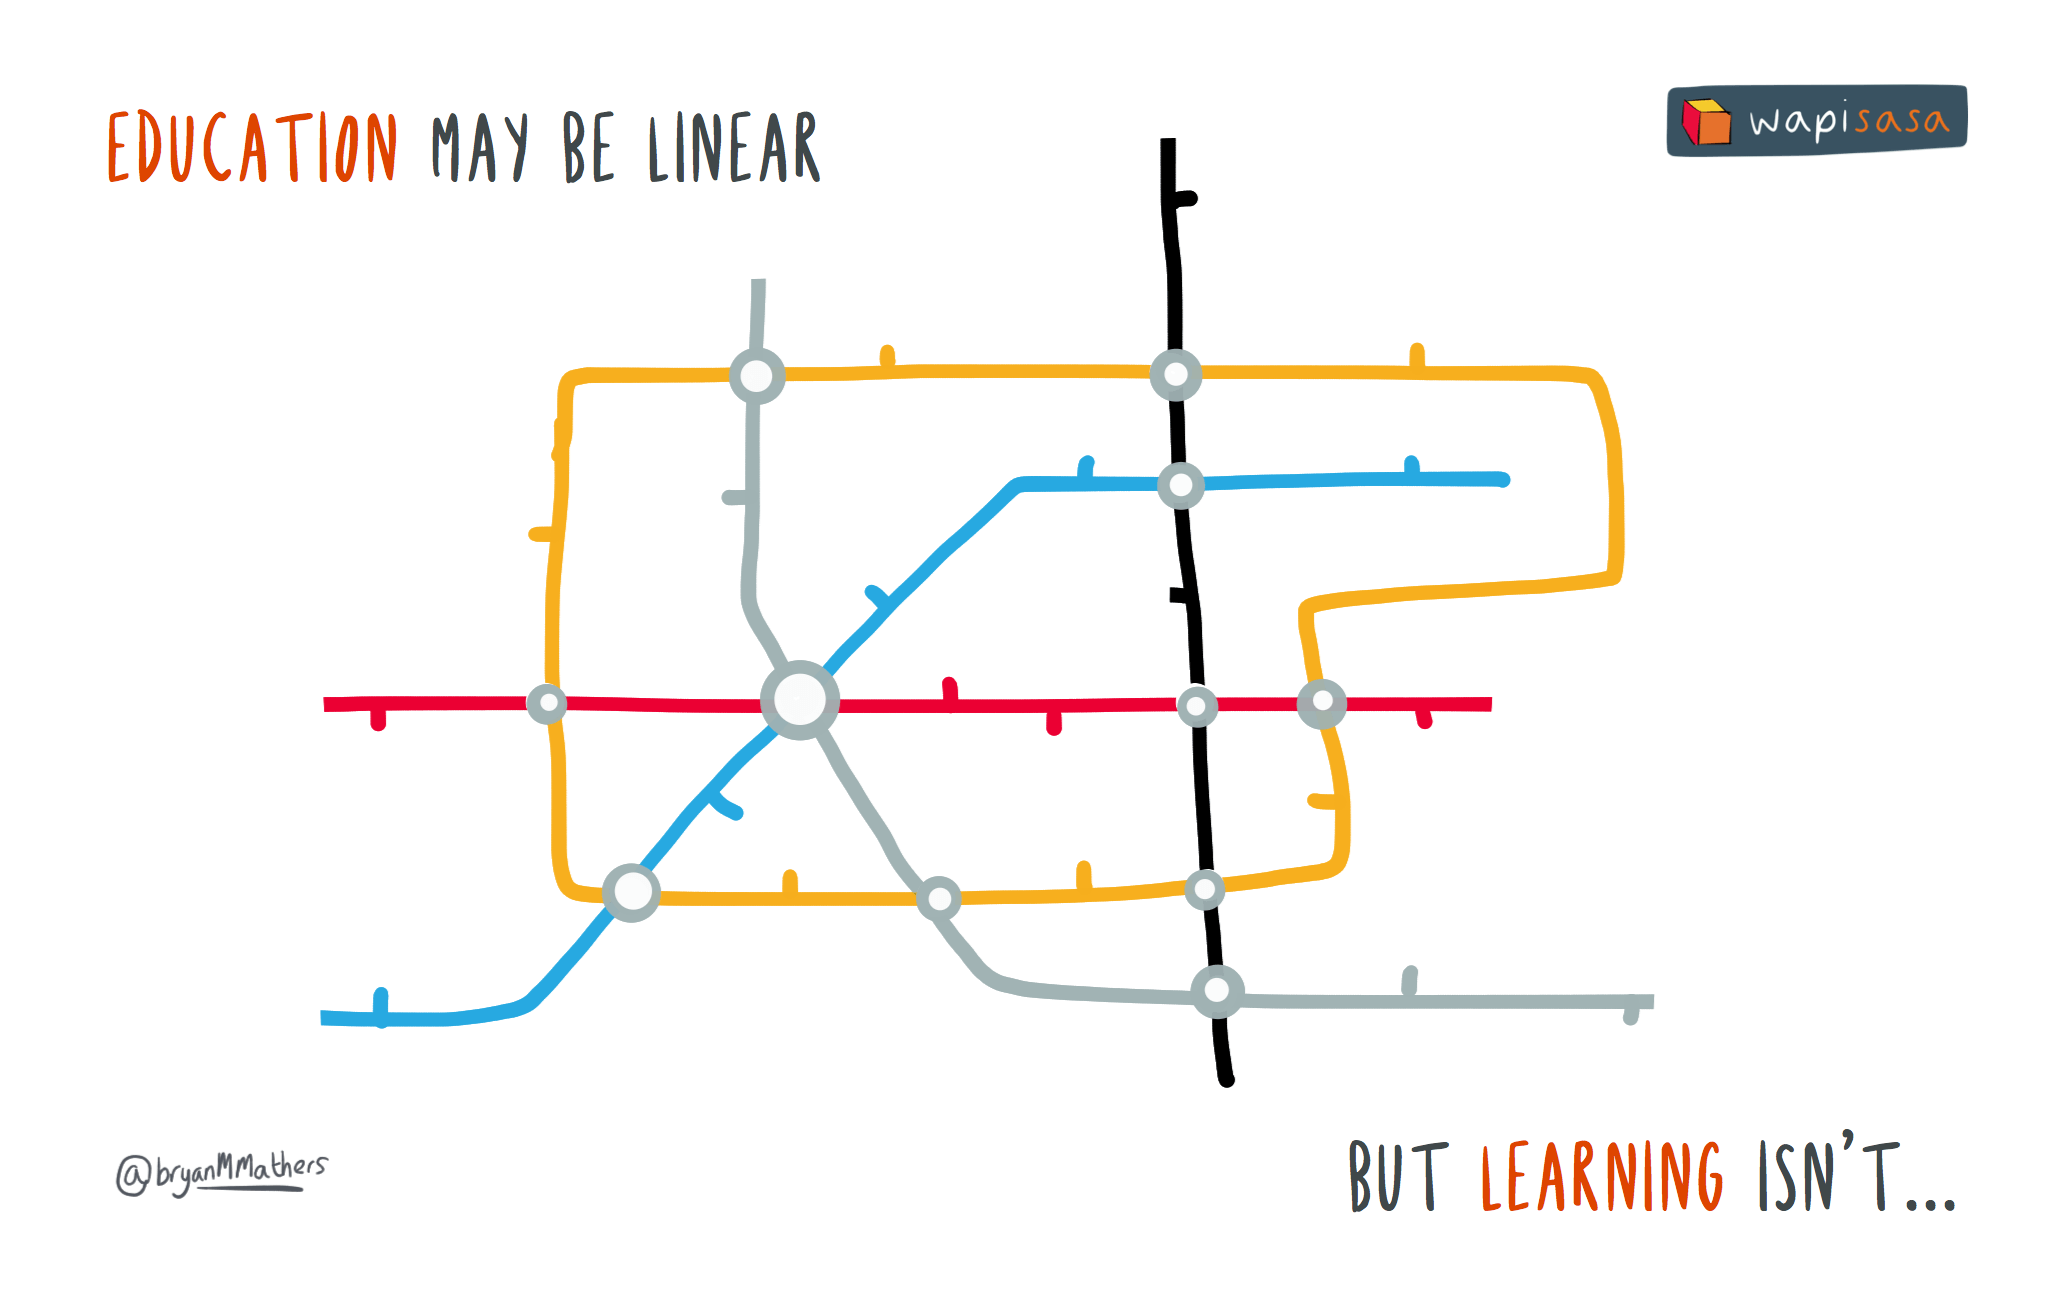 files/images/education-may-be-linear.png